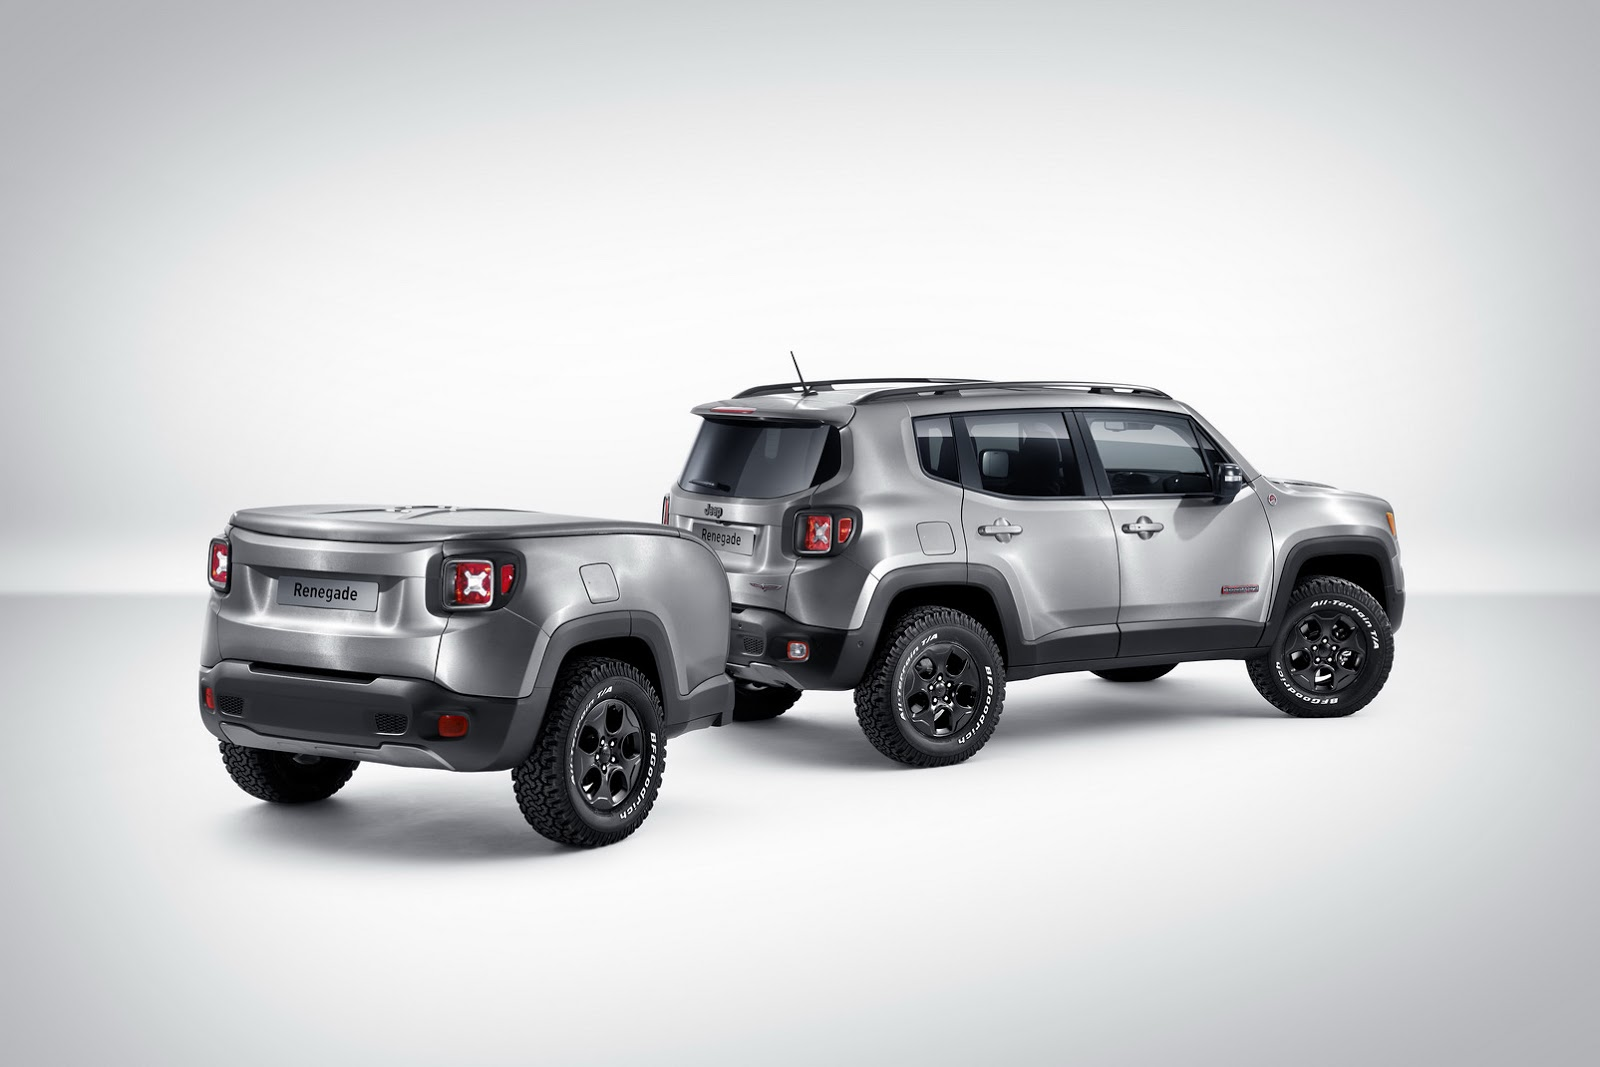 jeep renegade gets a trailer sidekick with hard steel